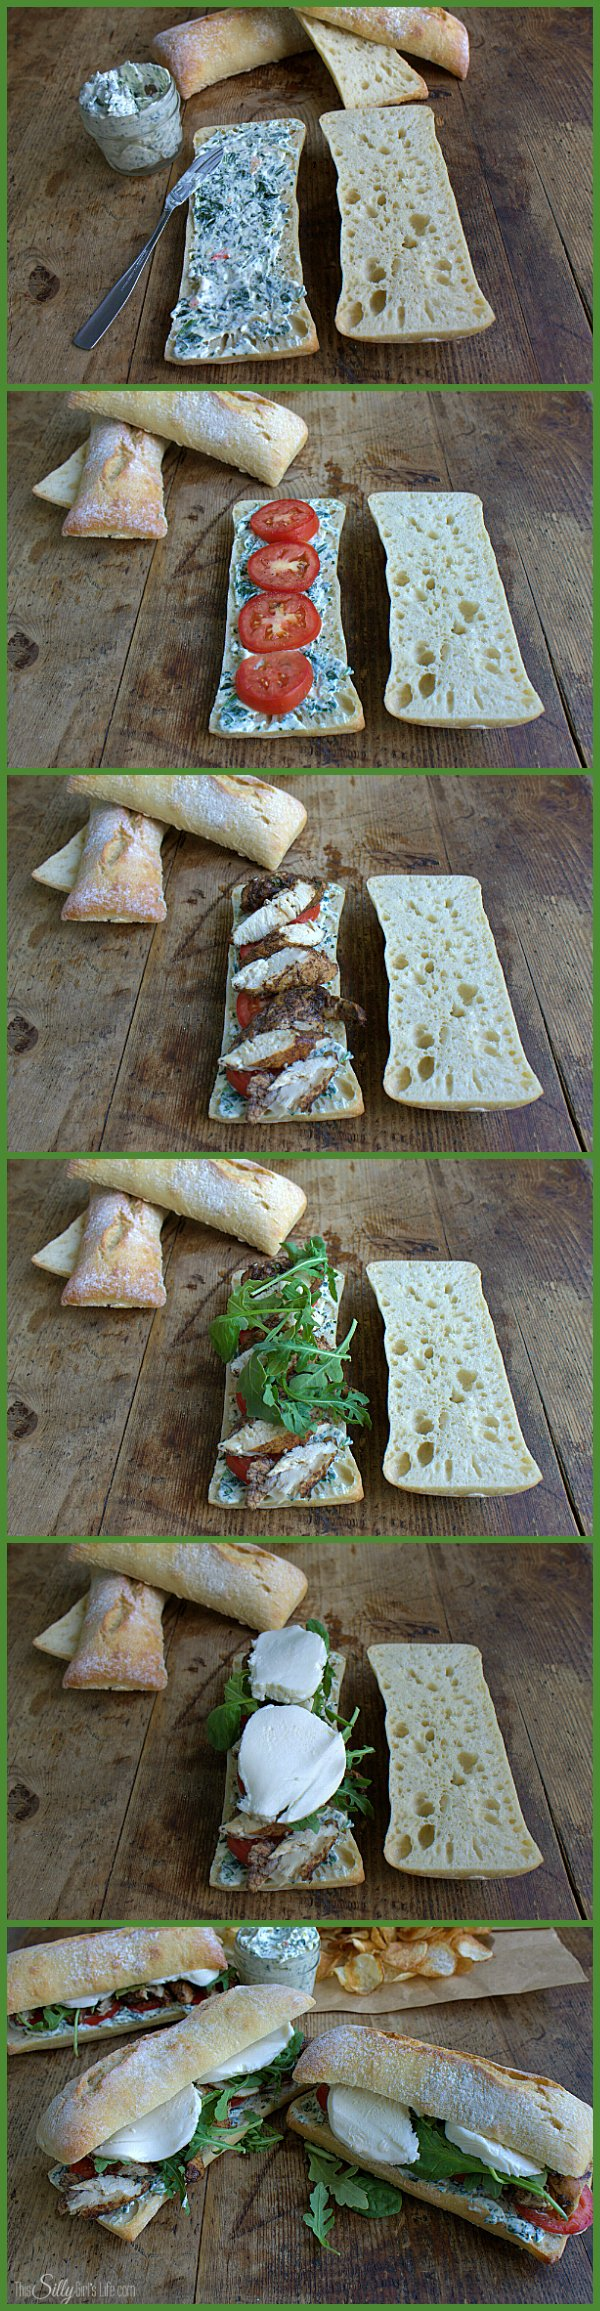 Chicken tenders marinated in balsamic, piled on cibatta bread with fresh arugula and sliced tomatoes. Creamy mozzarella cheese and my secret ingredient, spinach dip! #TEArifficPairs #shop